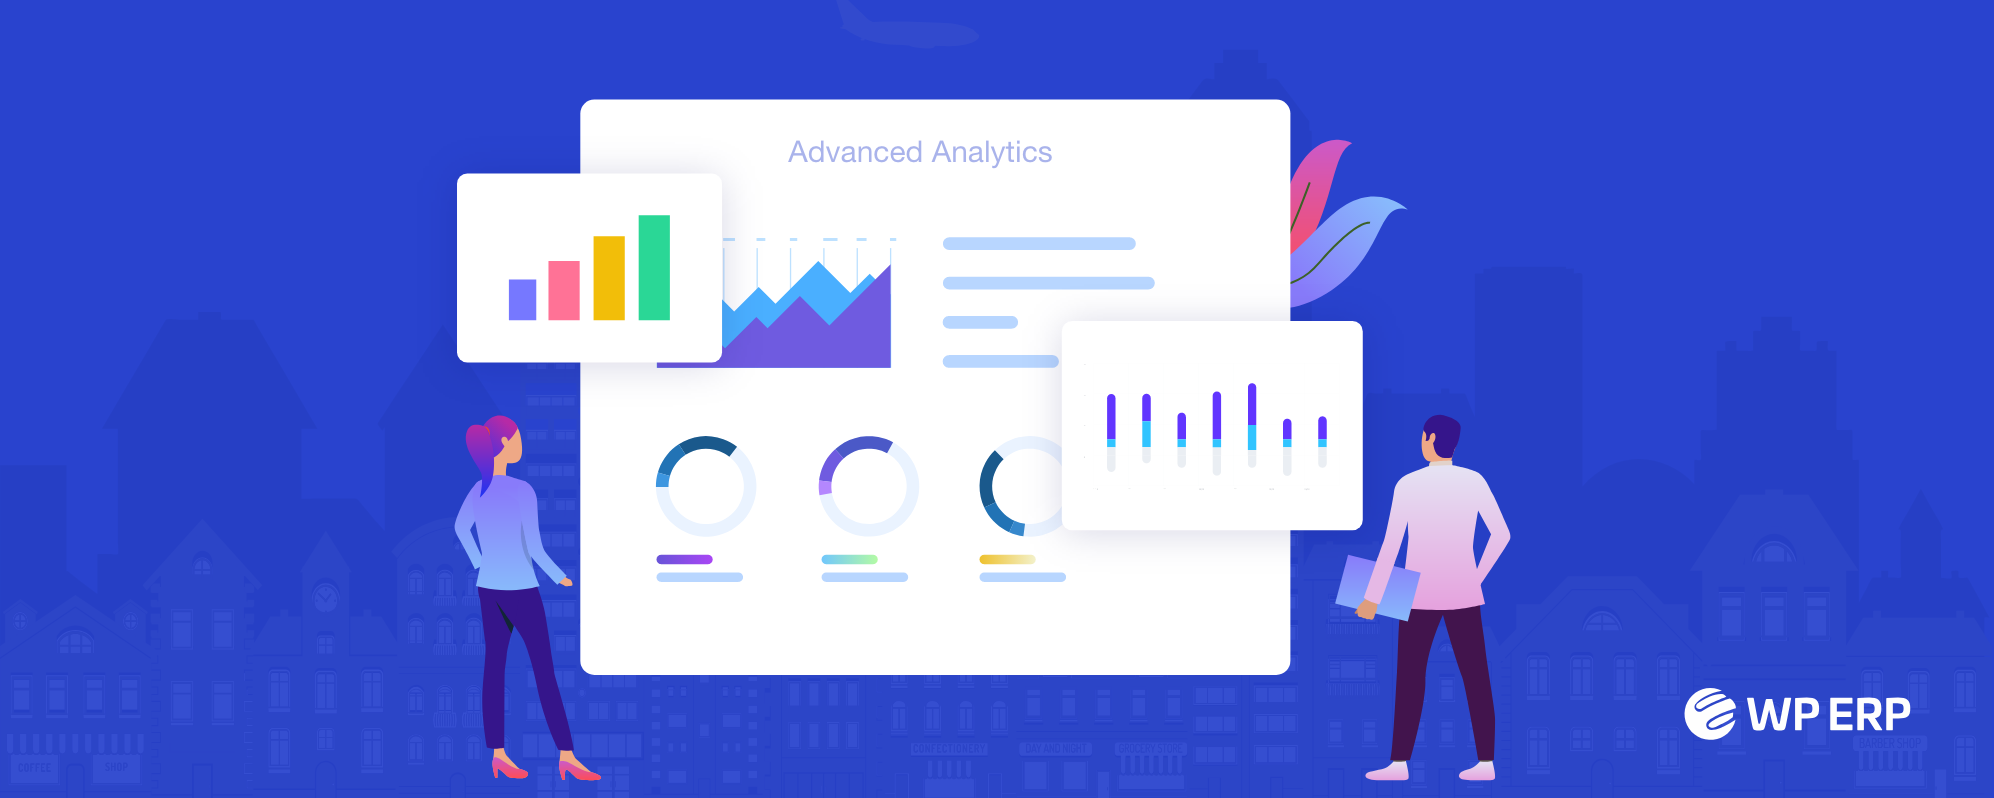 Advanced Analytics data driven enterprise